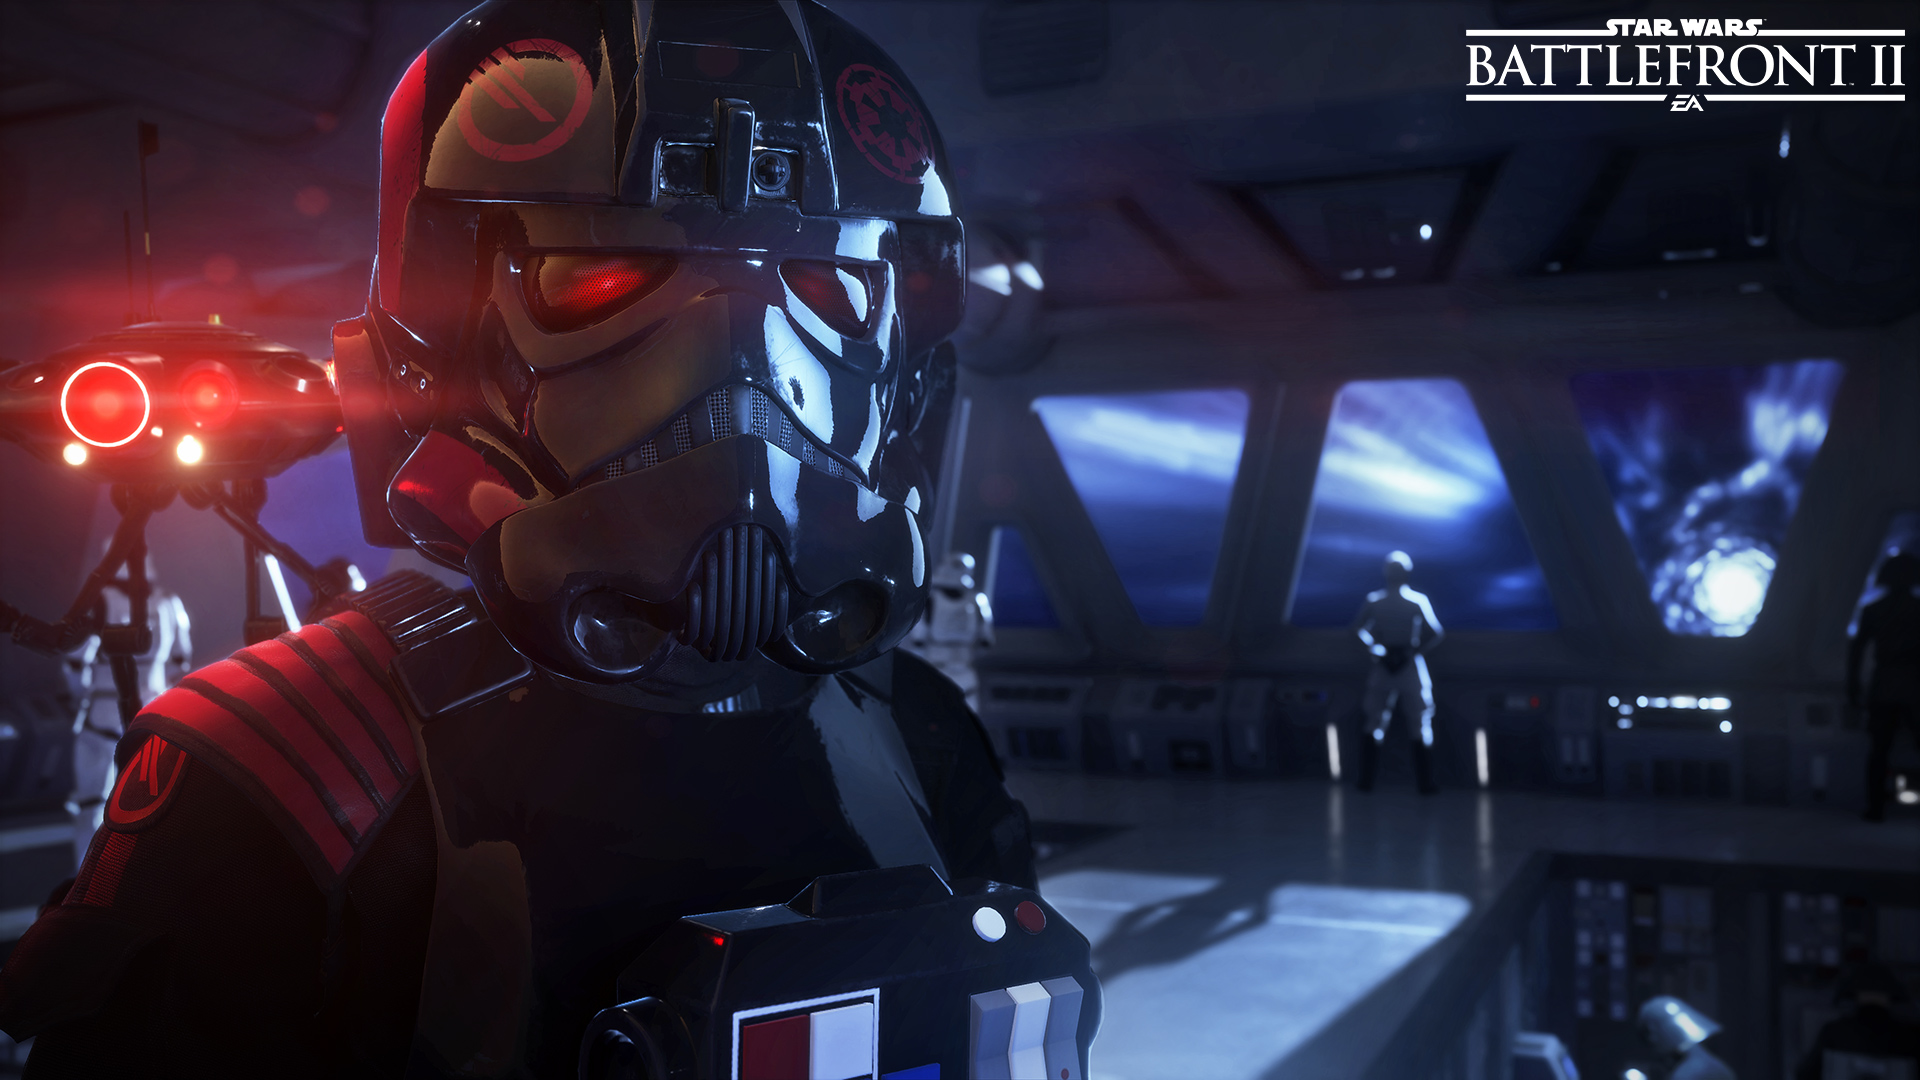 EA Changes Star Wars Battlefront 2 Loot Crate System Following Beta Feedback - http://www.ign.com/articles/2017/10/31/ea-changes-star-wars-battlefront-2-loot-crate-system-following-beta-feedback